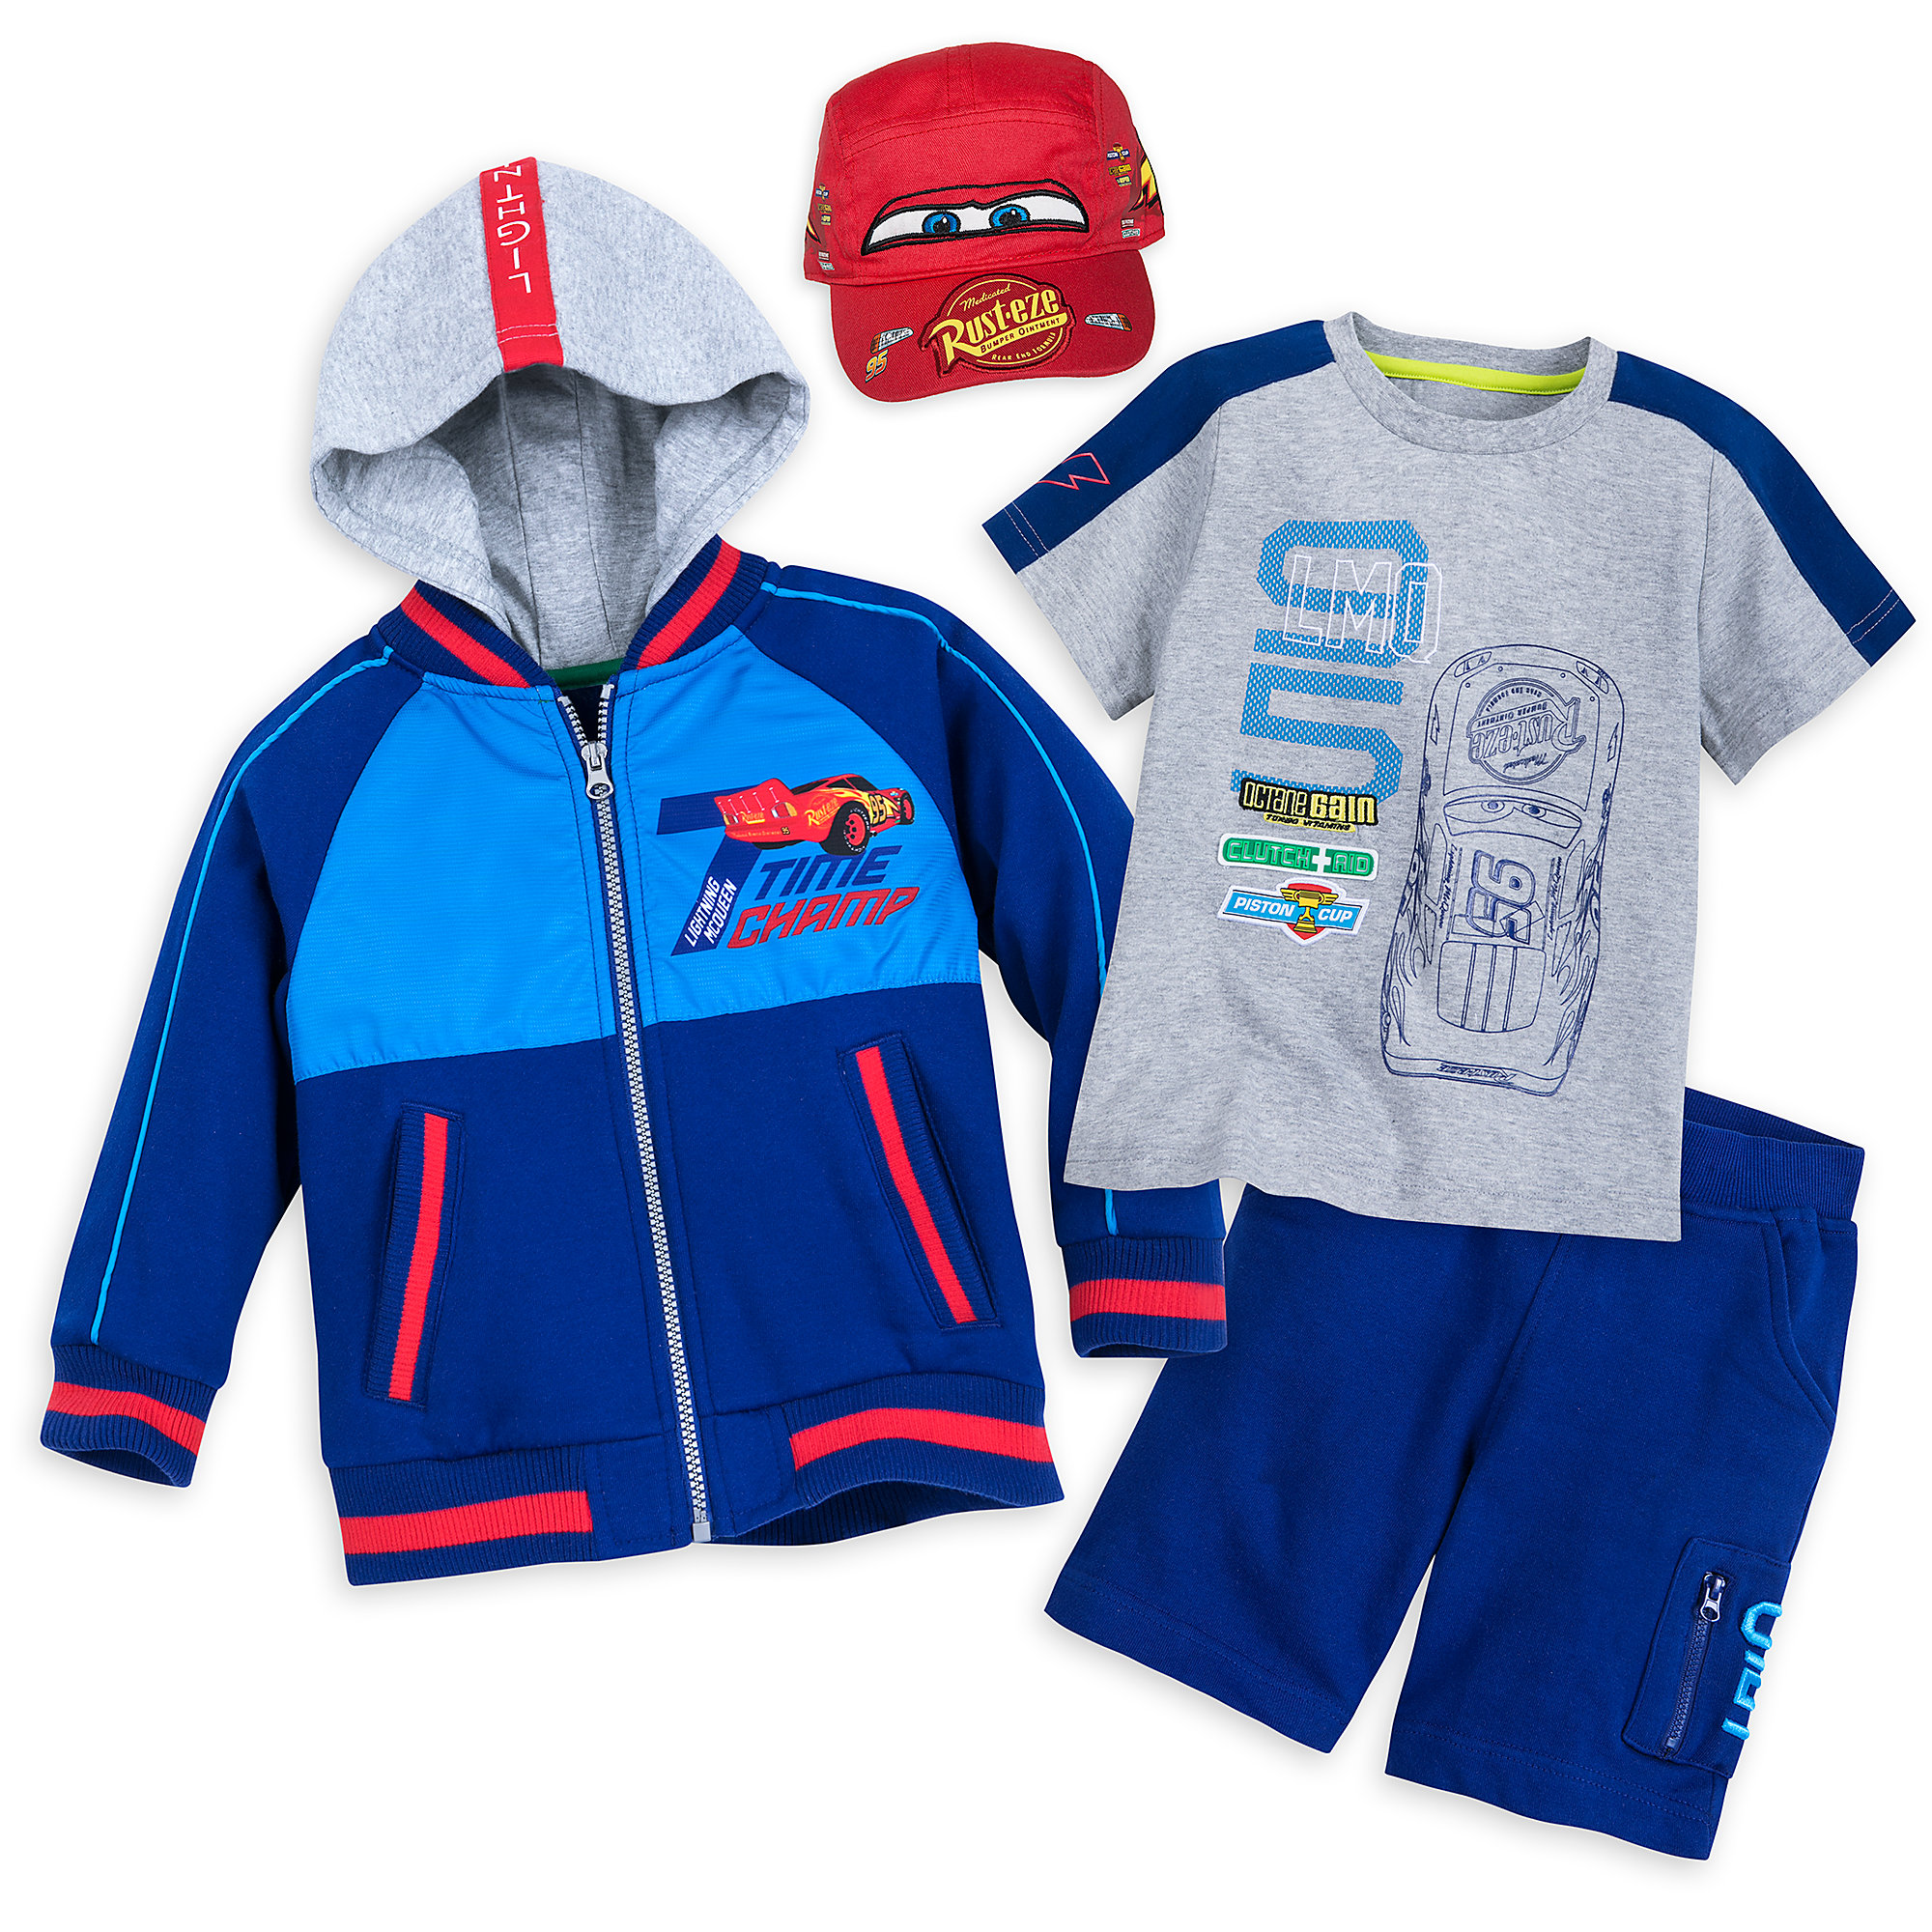 Lightning McQueen Fashion Collection for Boys - Cars